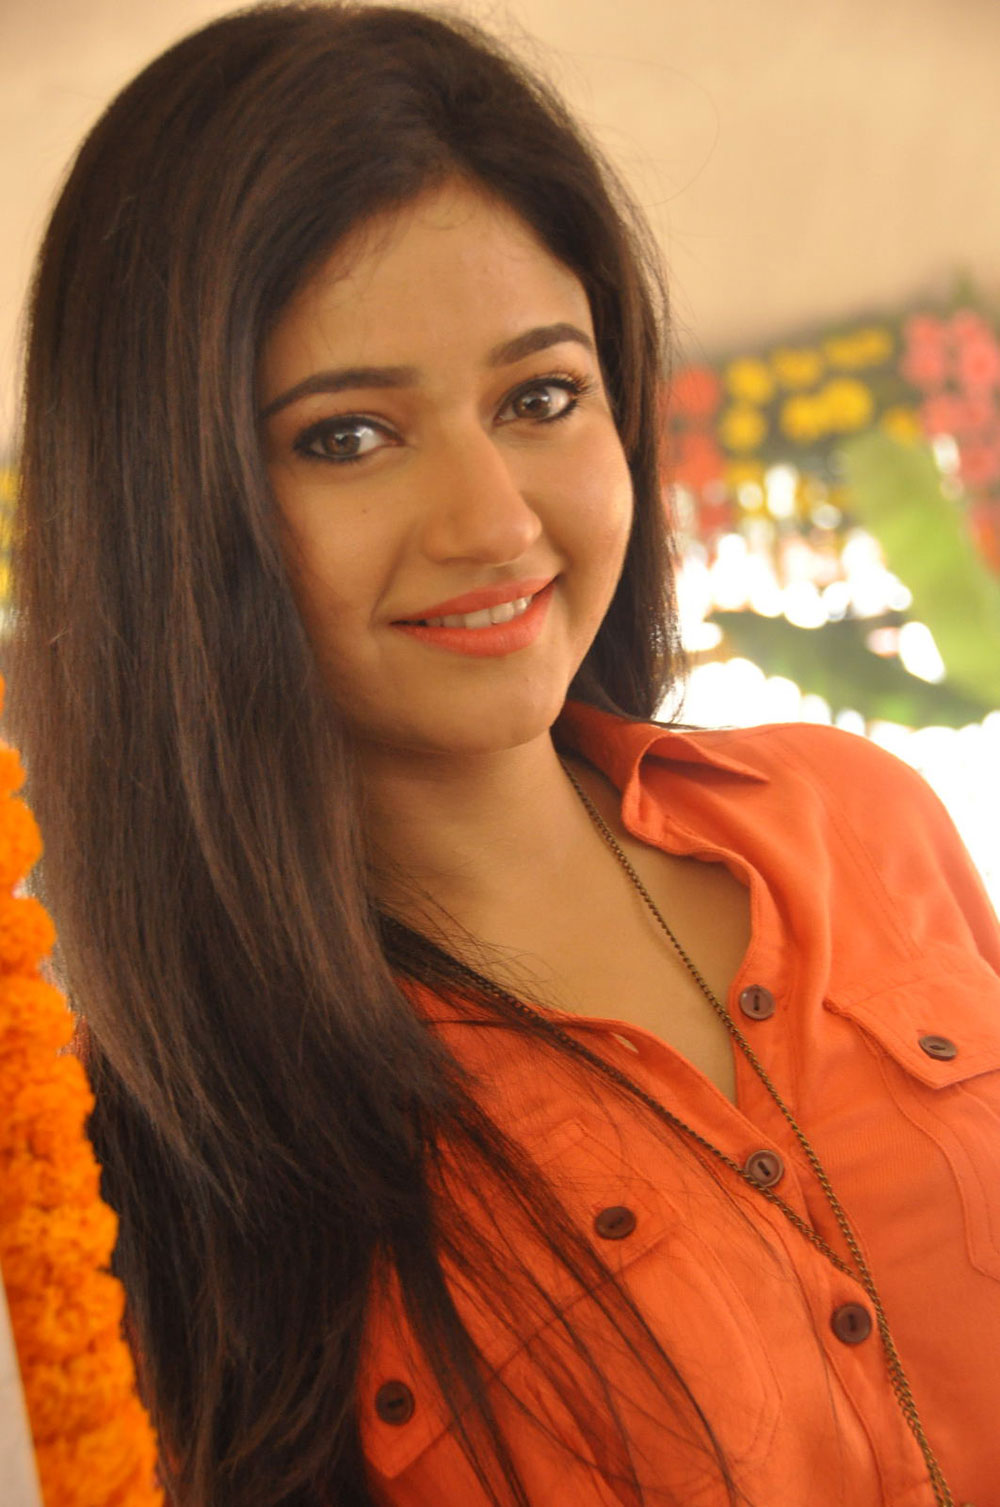 sexy hot glamorous Poonam bajwa latest gorgeous photos gallery